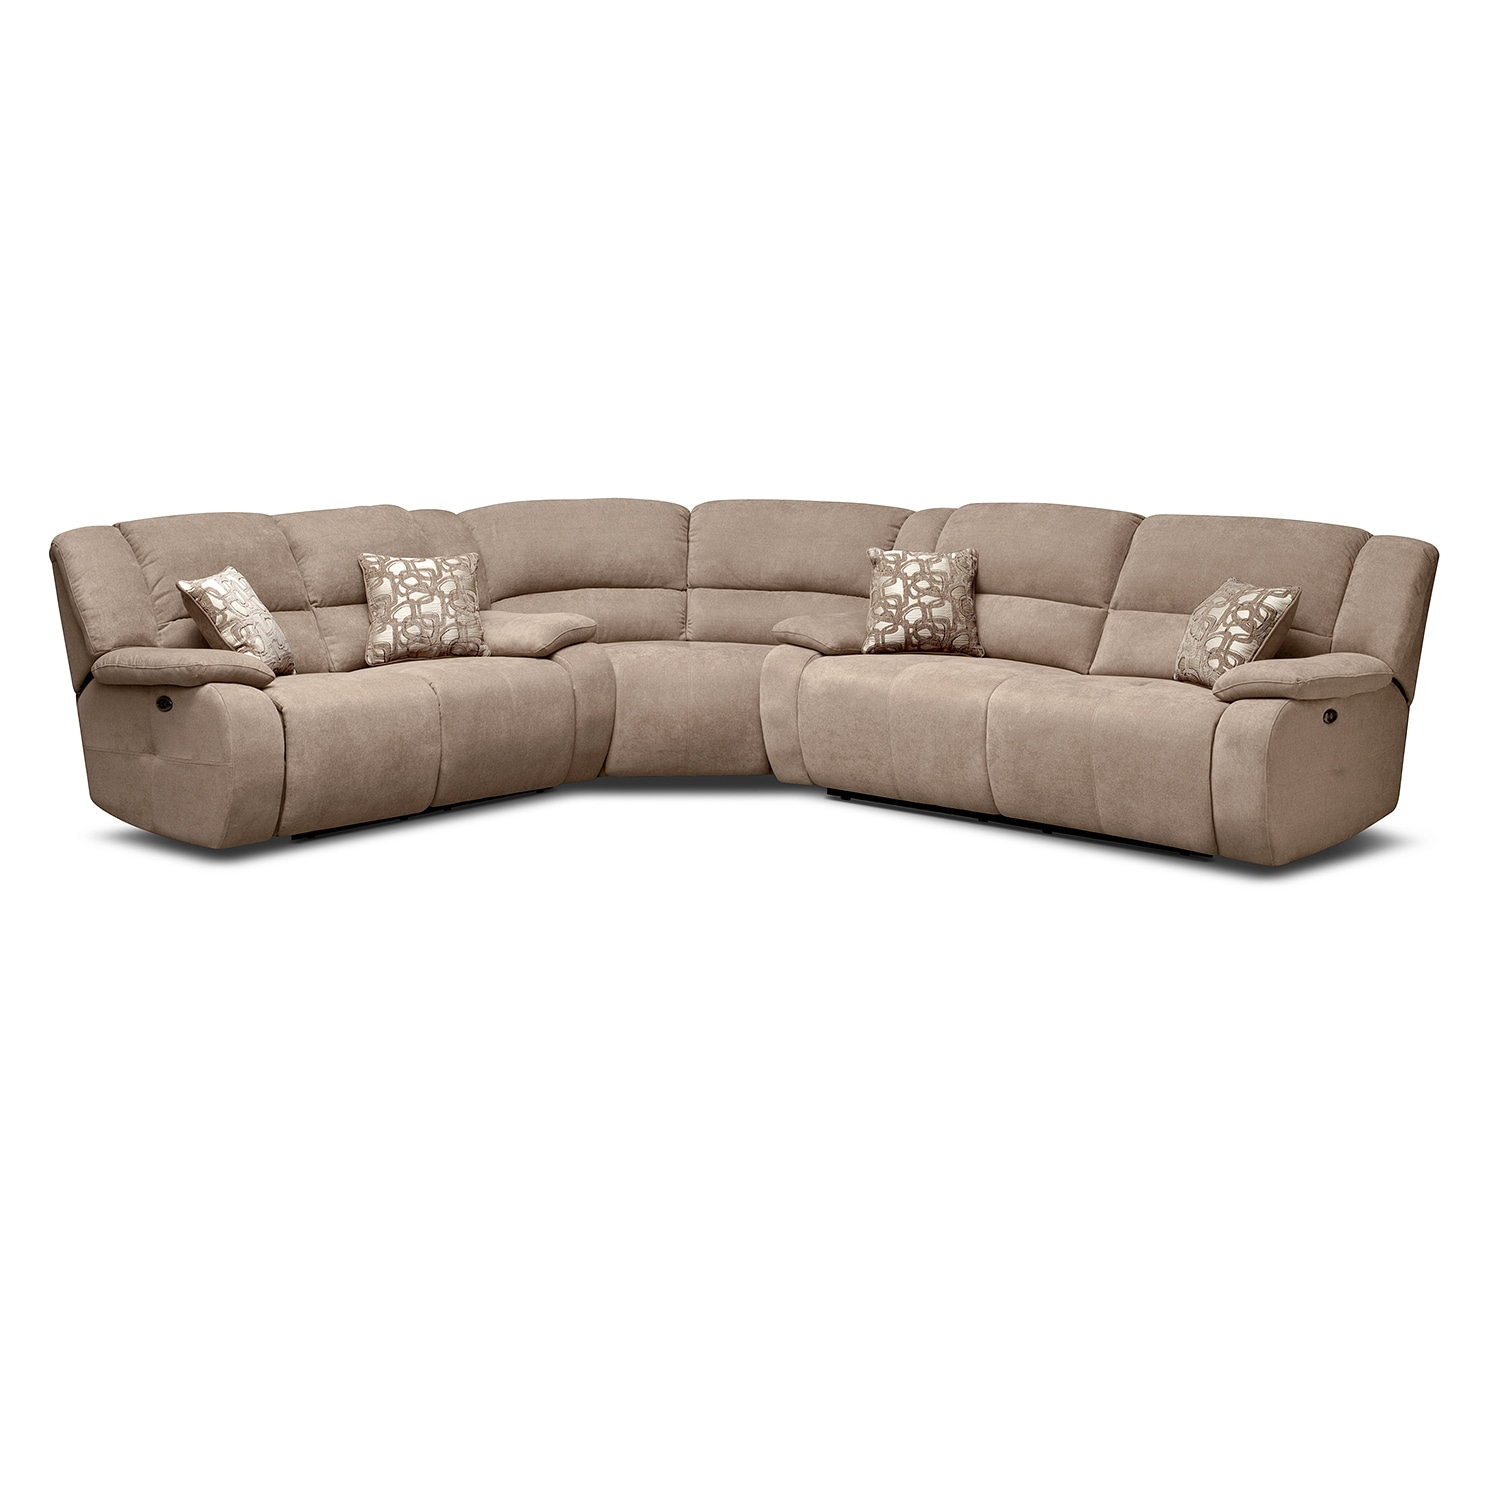 Living Room Furniture - Destin Beige II 3 Pc. Power Reclining Sectional